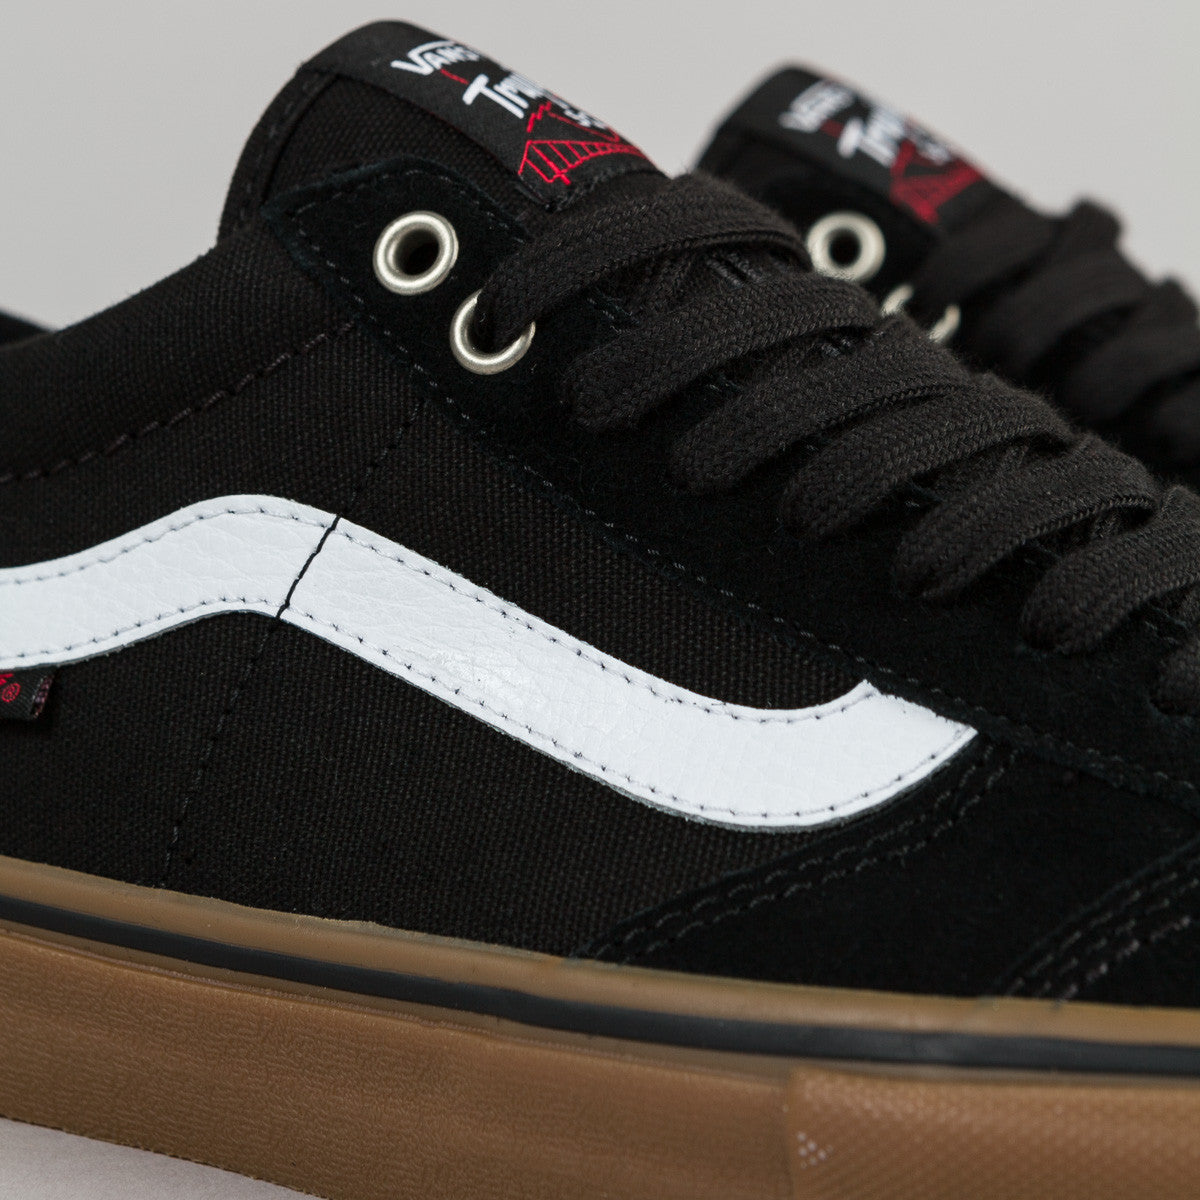 Vans TNT SG Shoes - Black / White / Gum